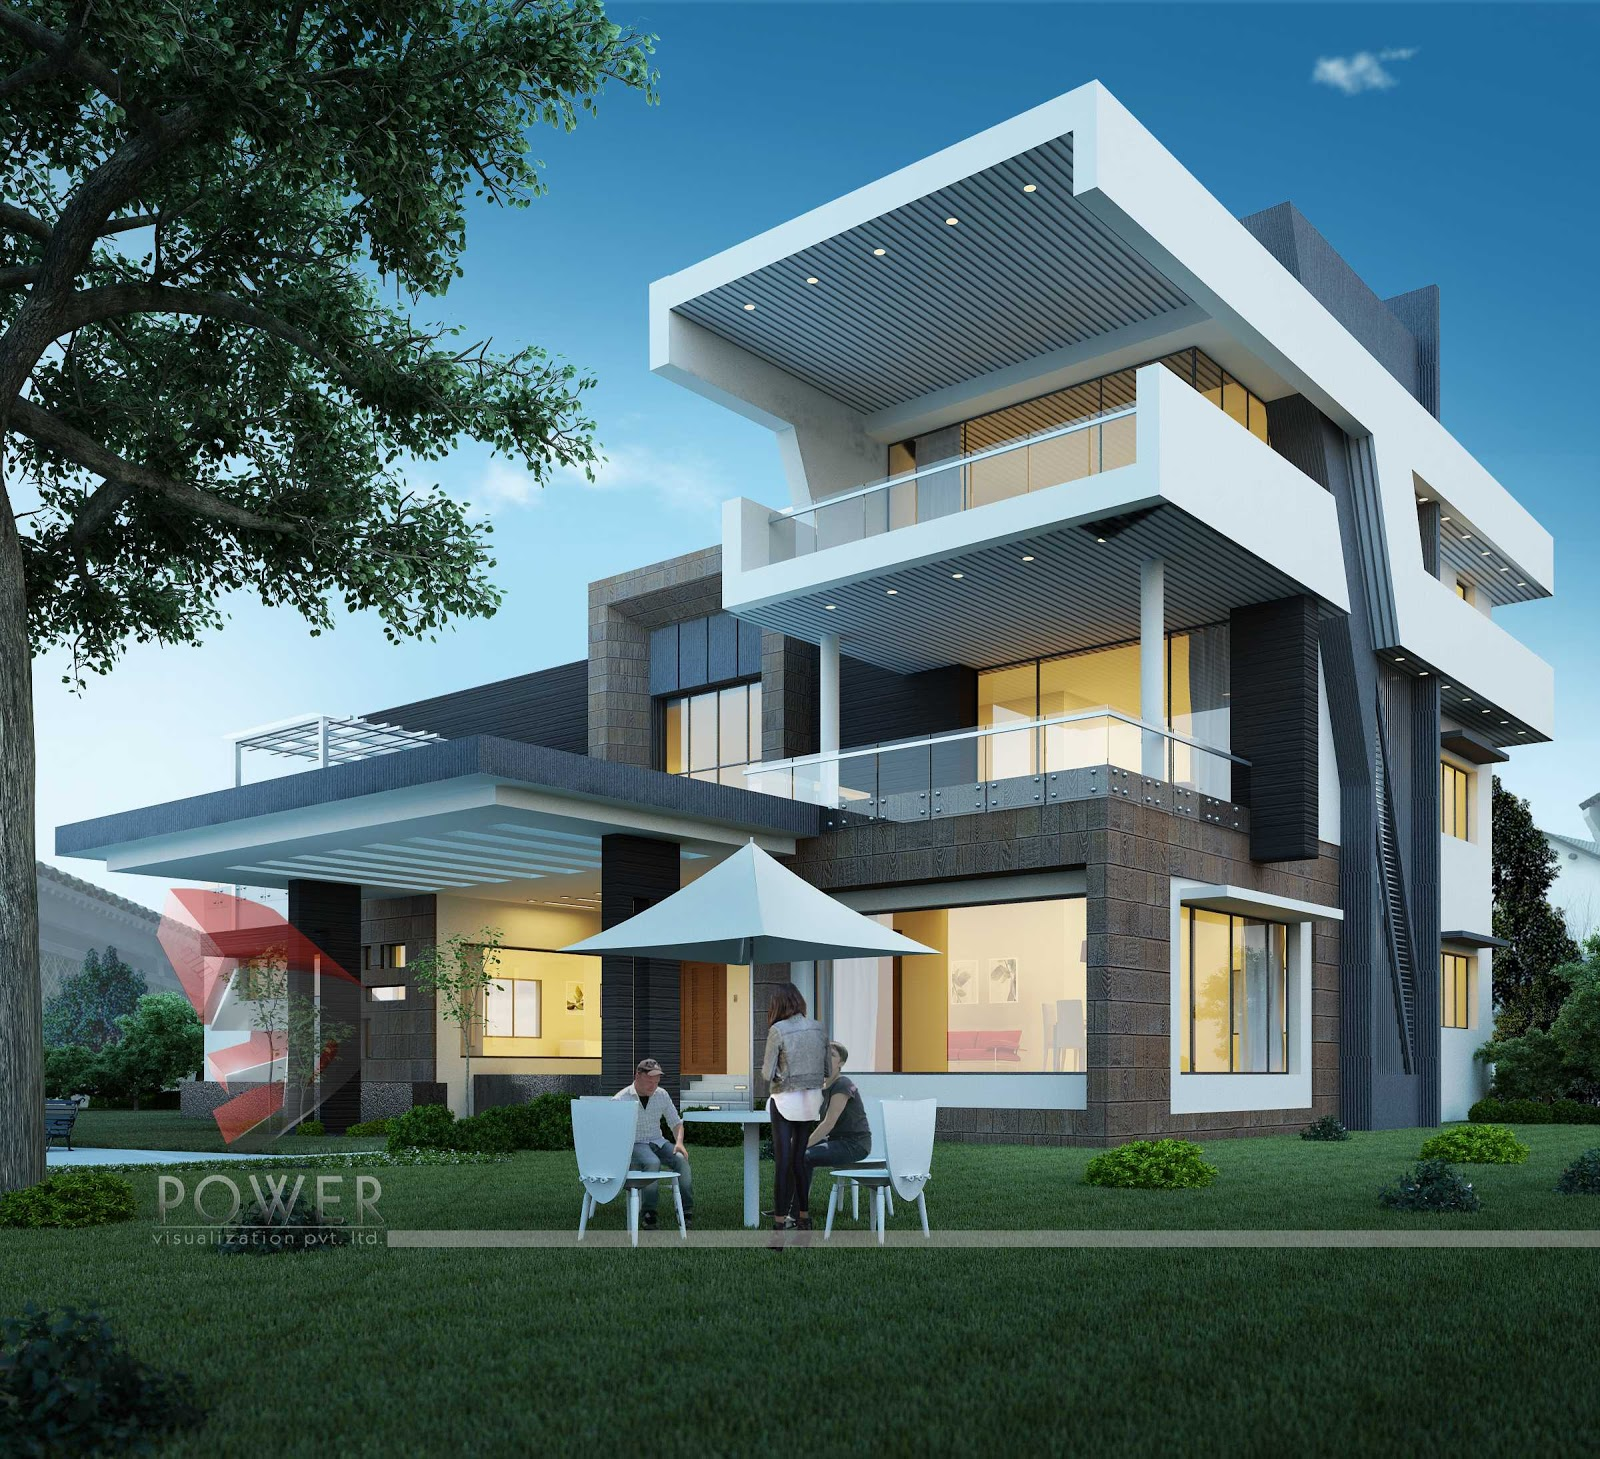 Ultra modern home designs home designs october 2012 for Best modern home plans